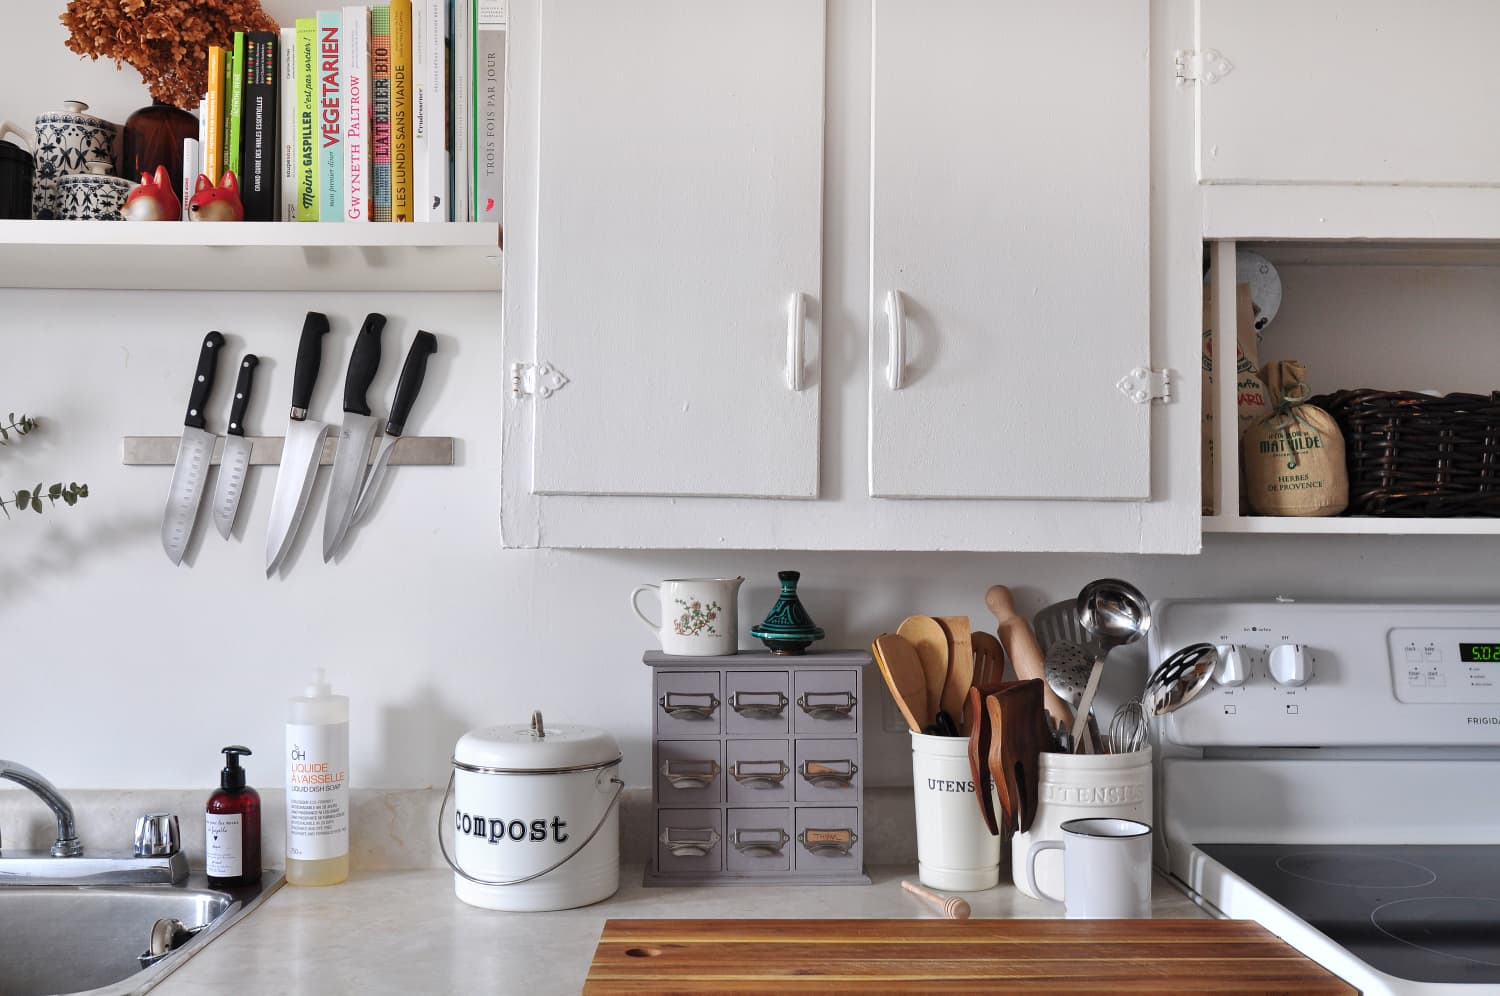 IKEA Came Up With Yet Another Clever Use For Their Magnetic Knife Holders